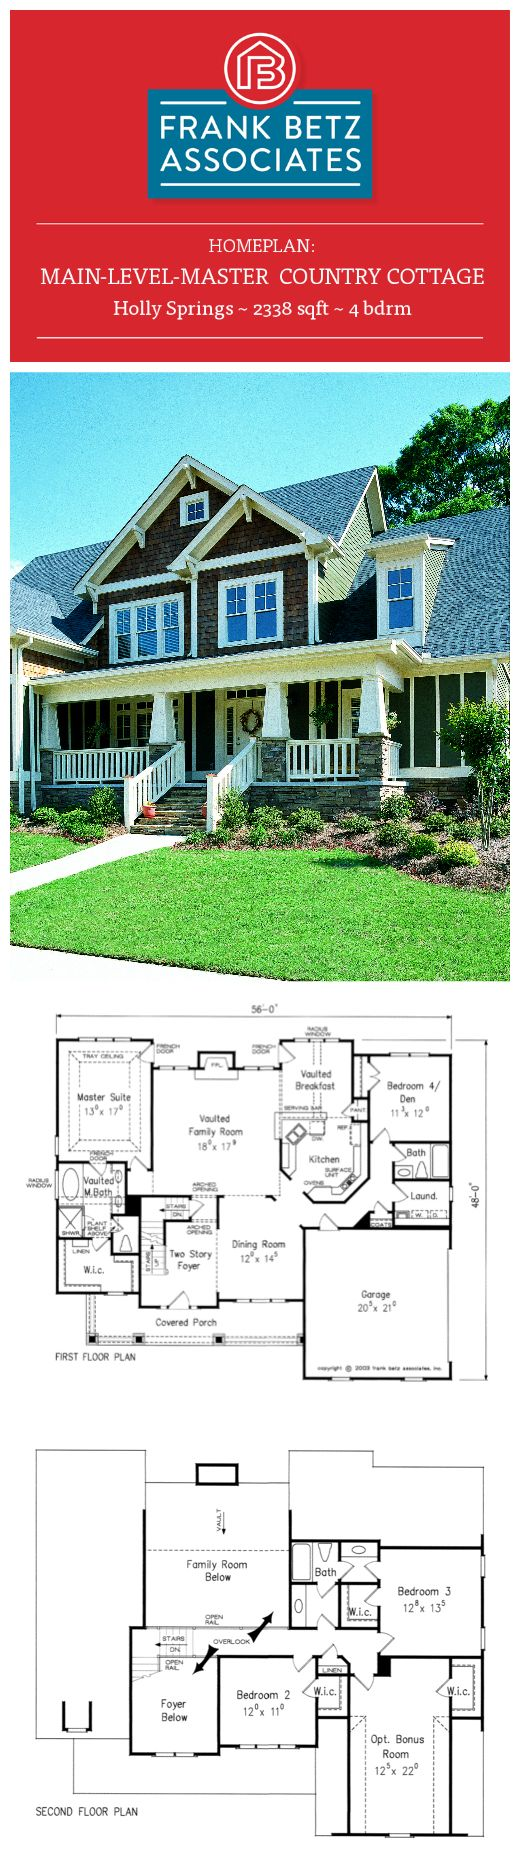 Holly Springs: 2338 sqft, 4 bdrm, main-level-master Craftsman style house plan design by Frank Betz Associates Inc.